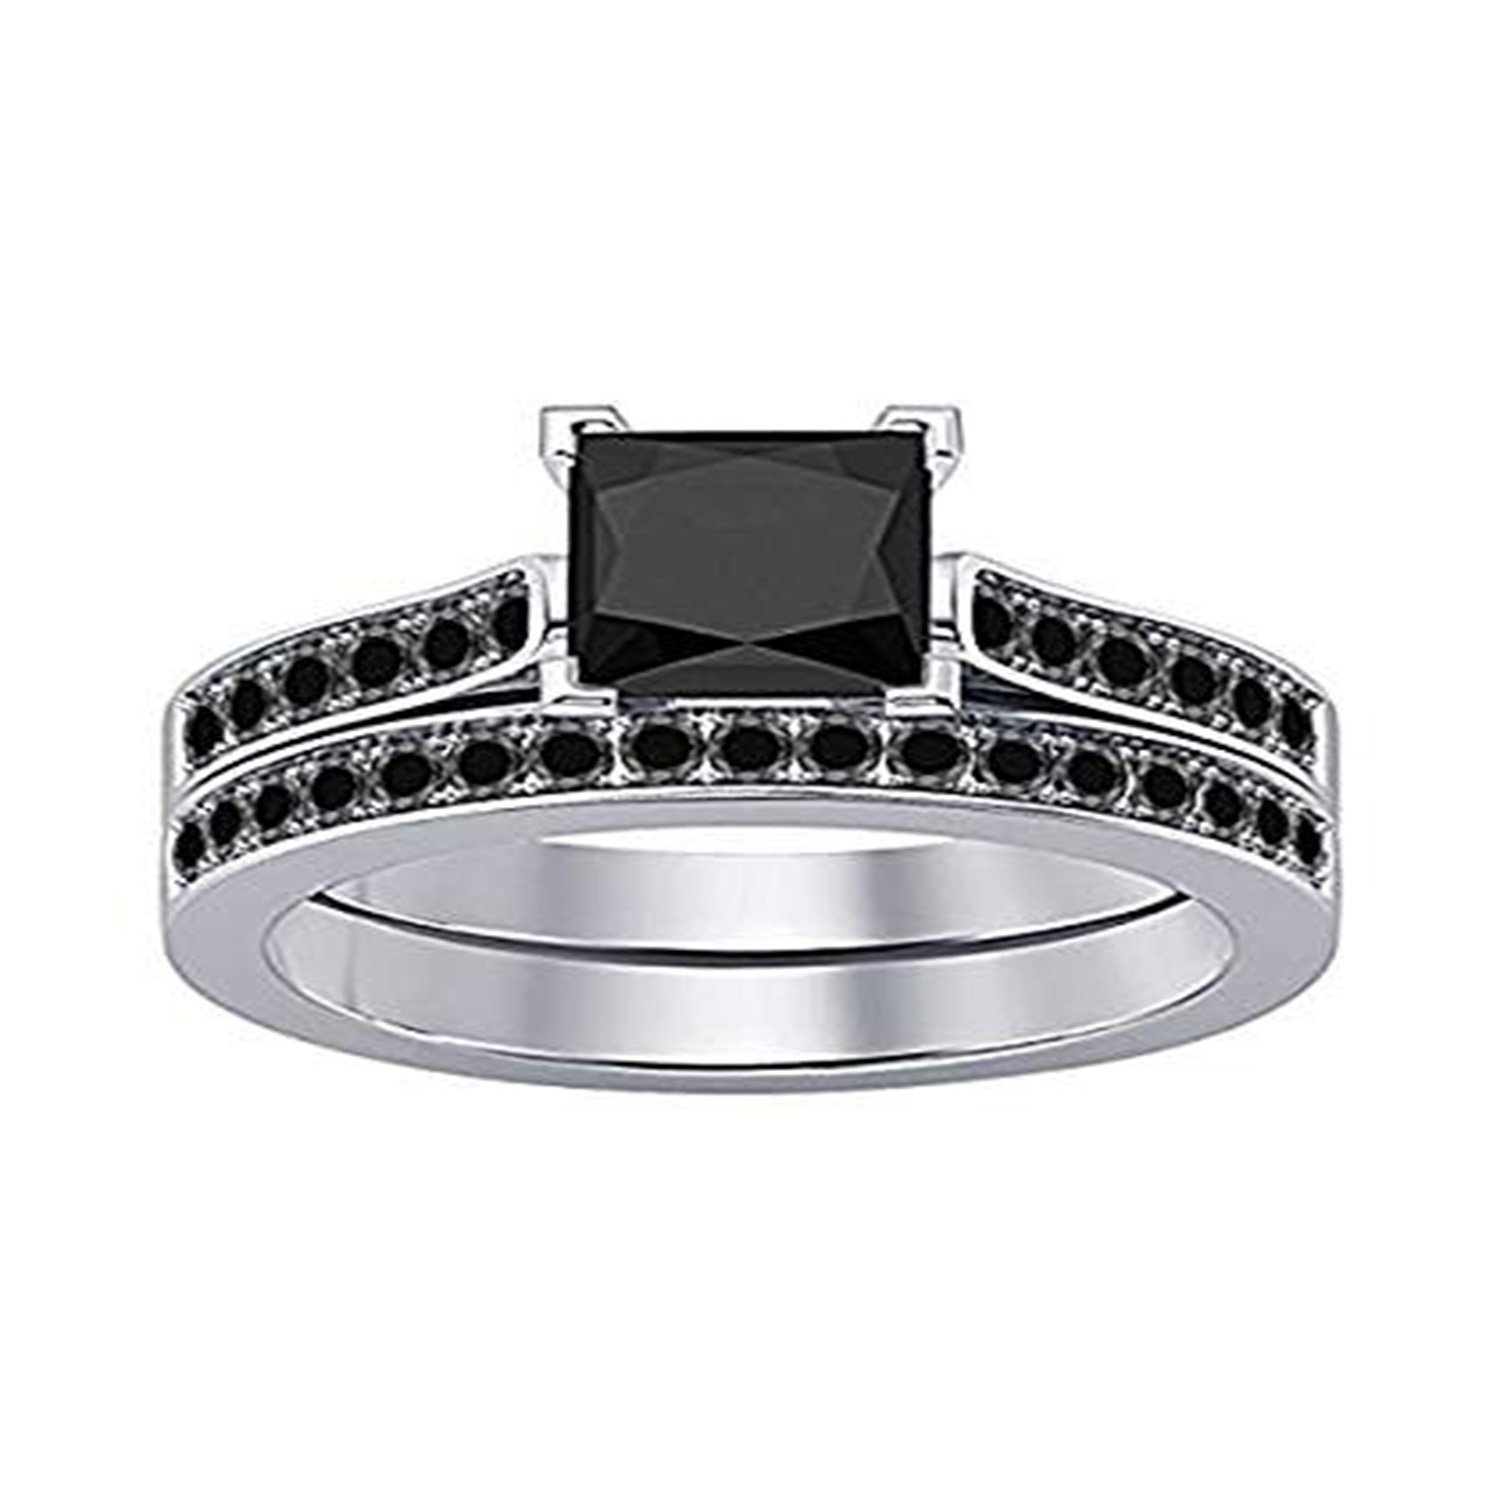 Engagement Wedding Ring with Band 14K White Gold Fn Alloy Black /& Simulated Diamond Studded Jewellery